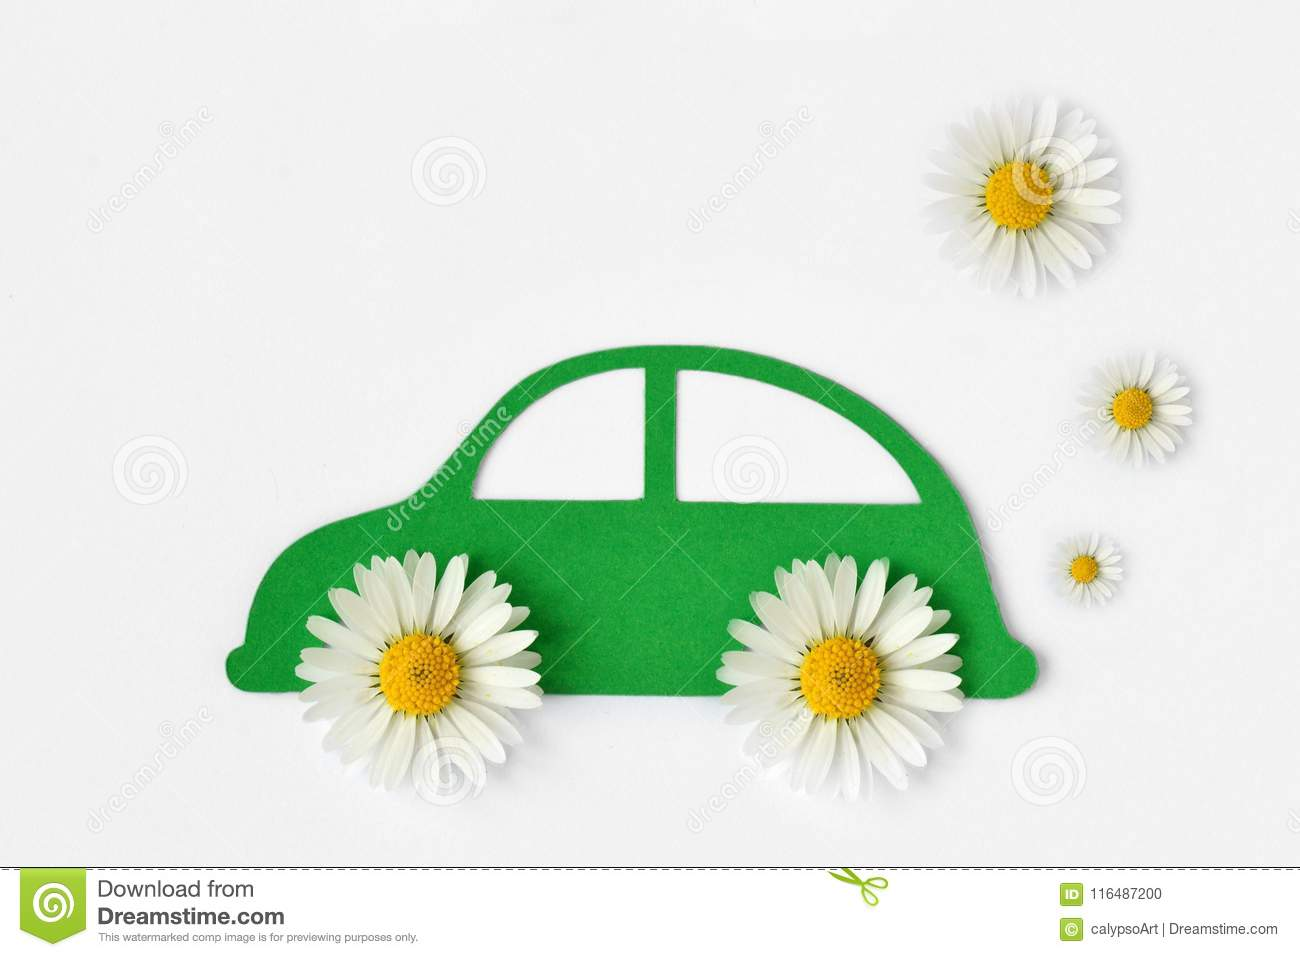 Paper Car Cut Out With Daisy Flowers Ecolology Car Concept Stock